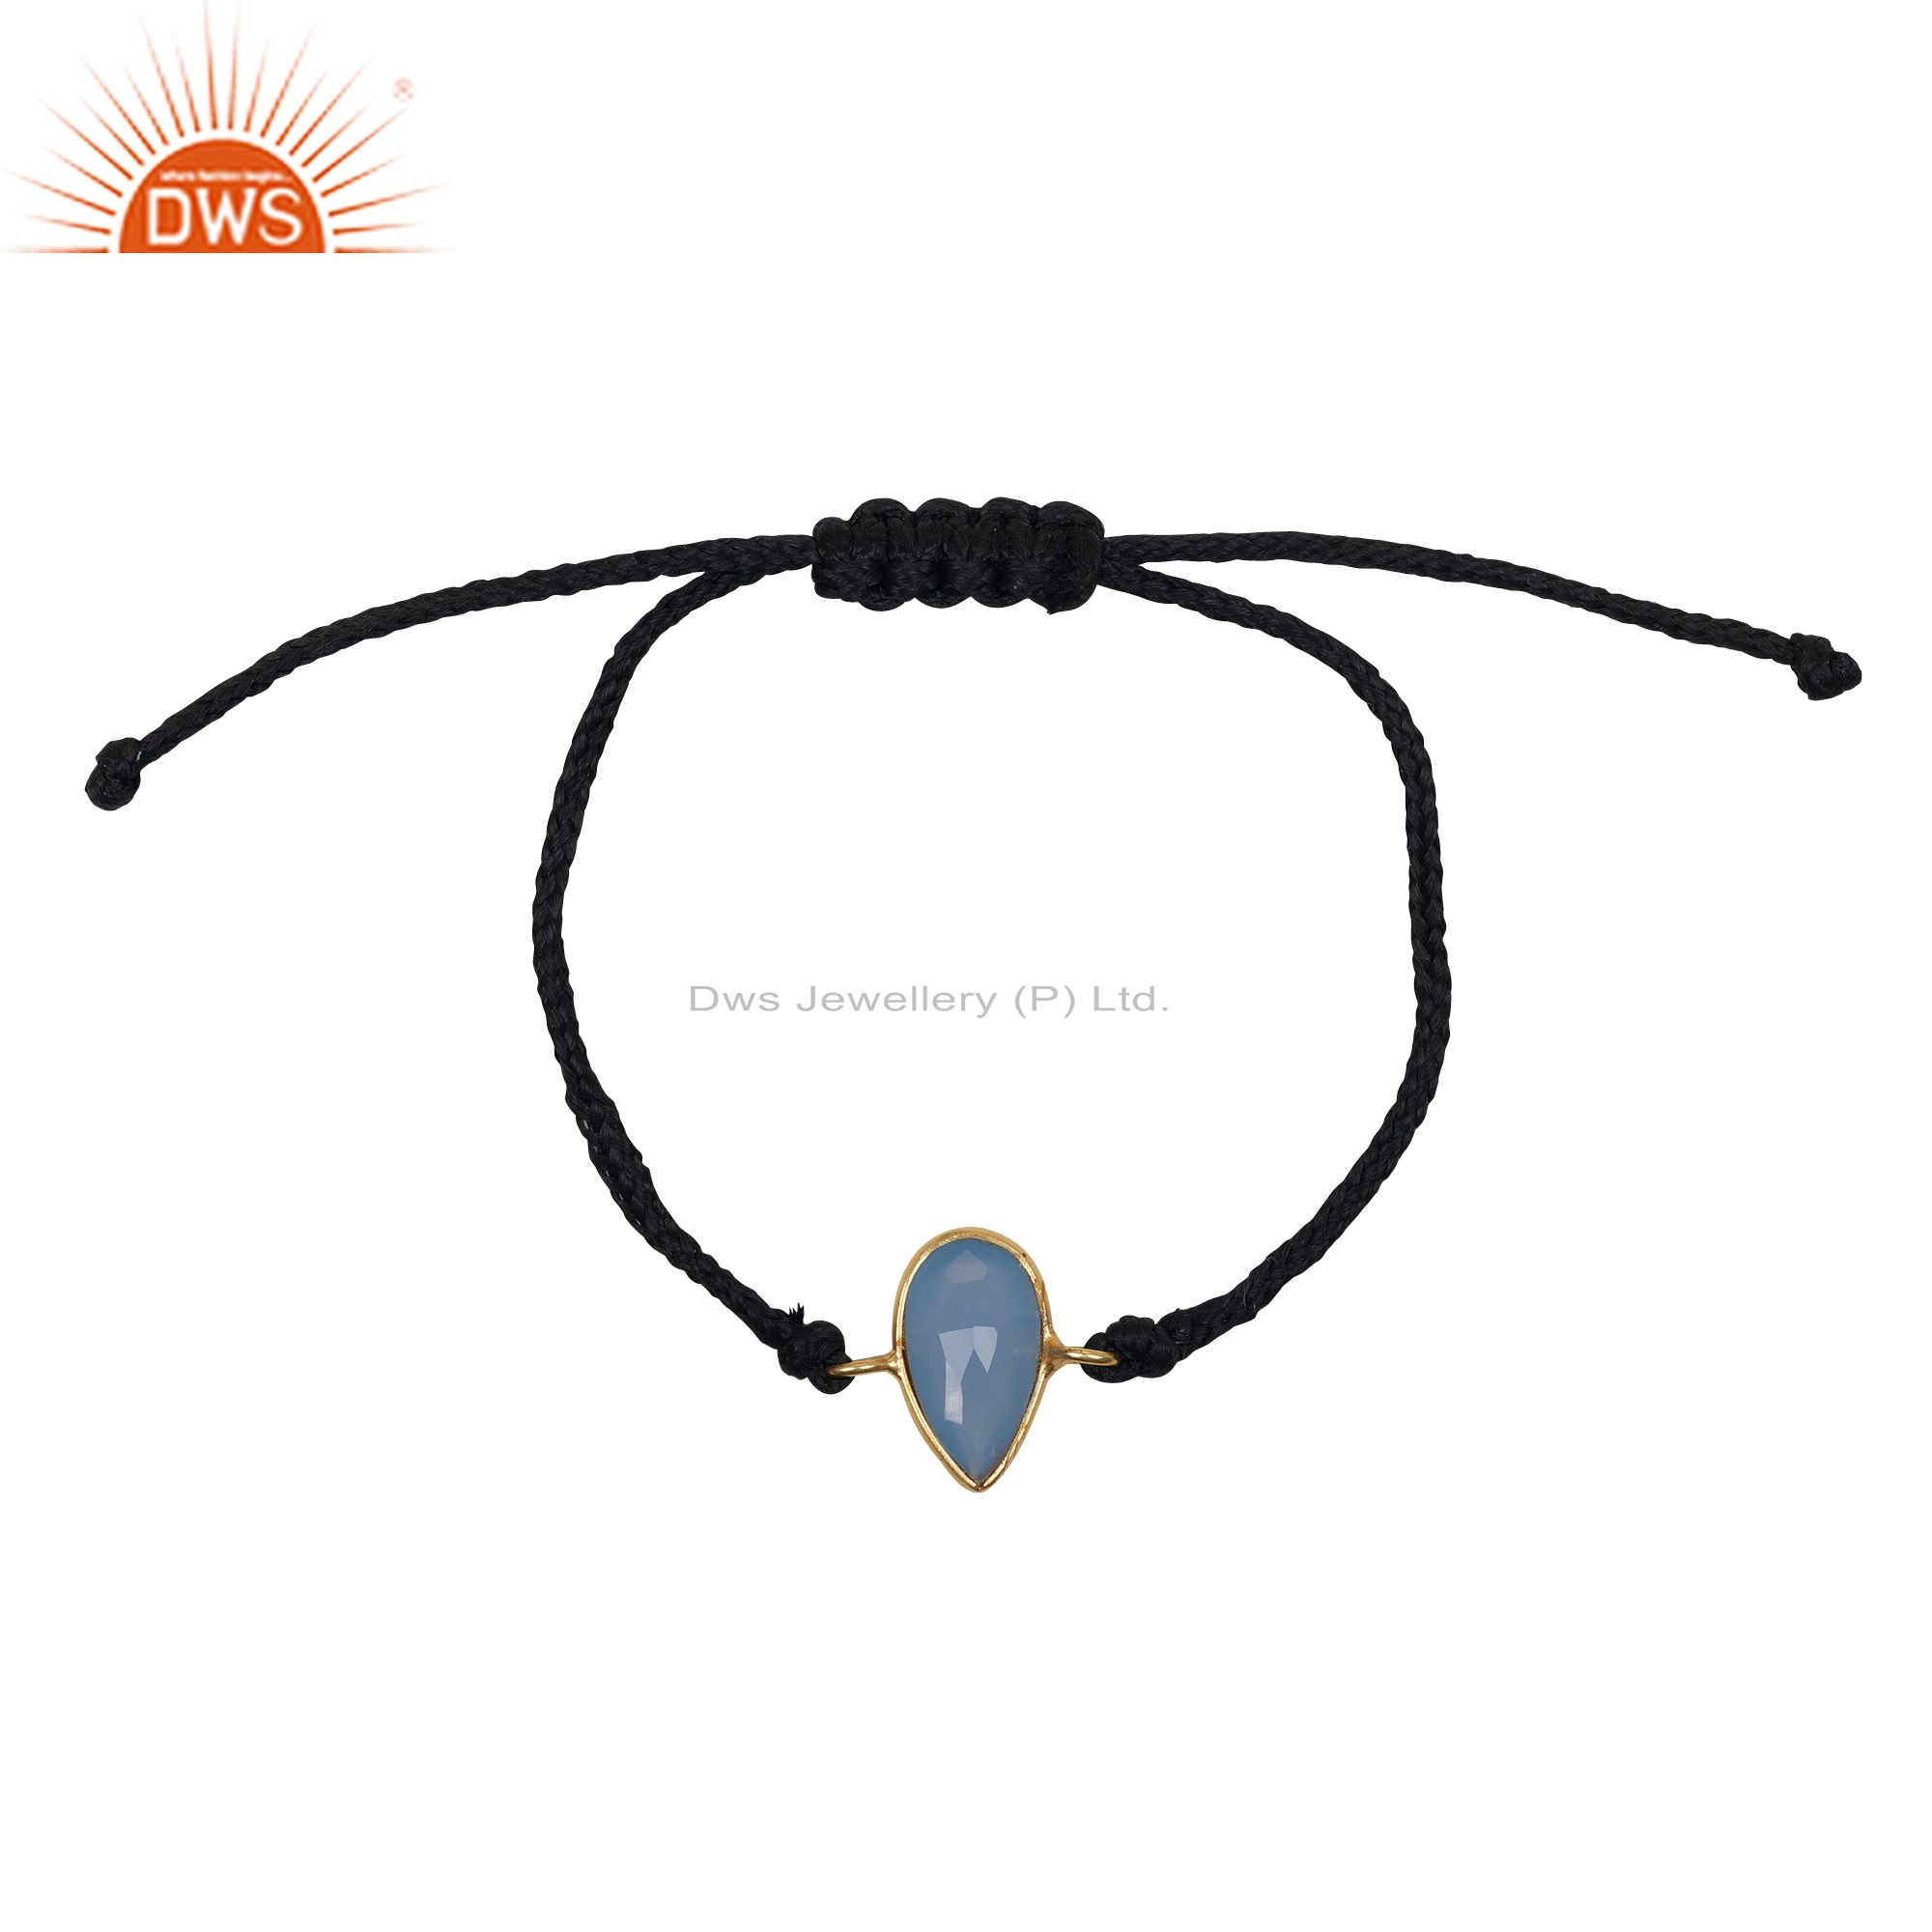 22K Yellow Gold Plated Sterling Silver Blue Chalcedony Drop Macrame Bracelet